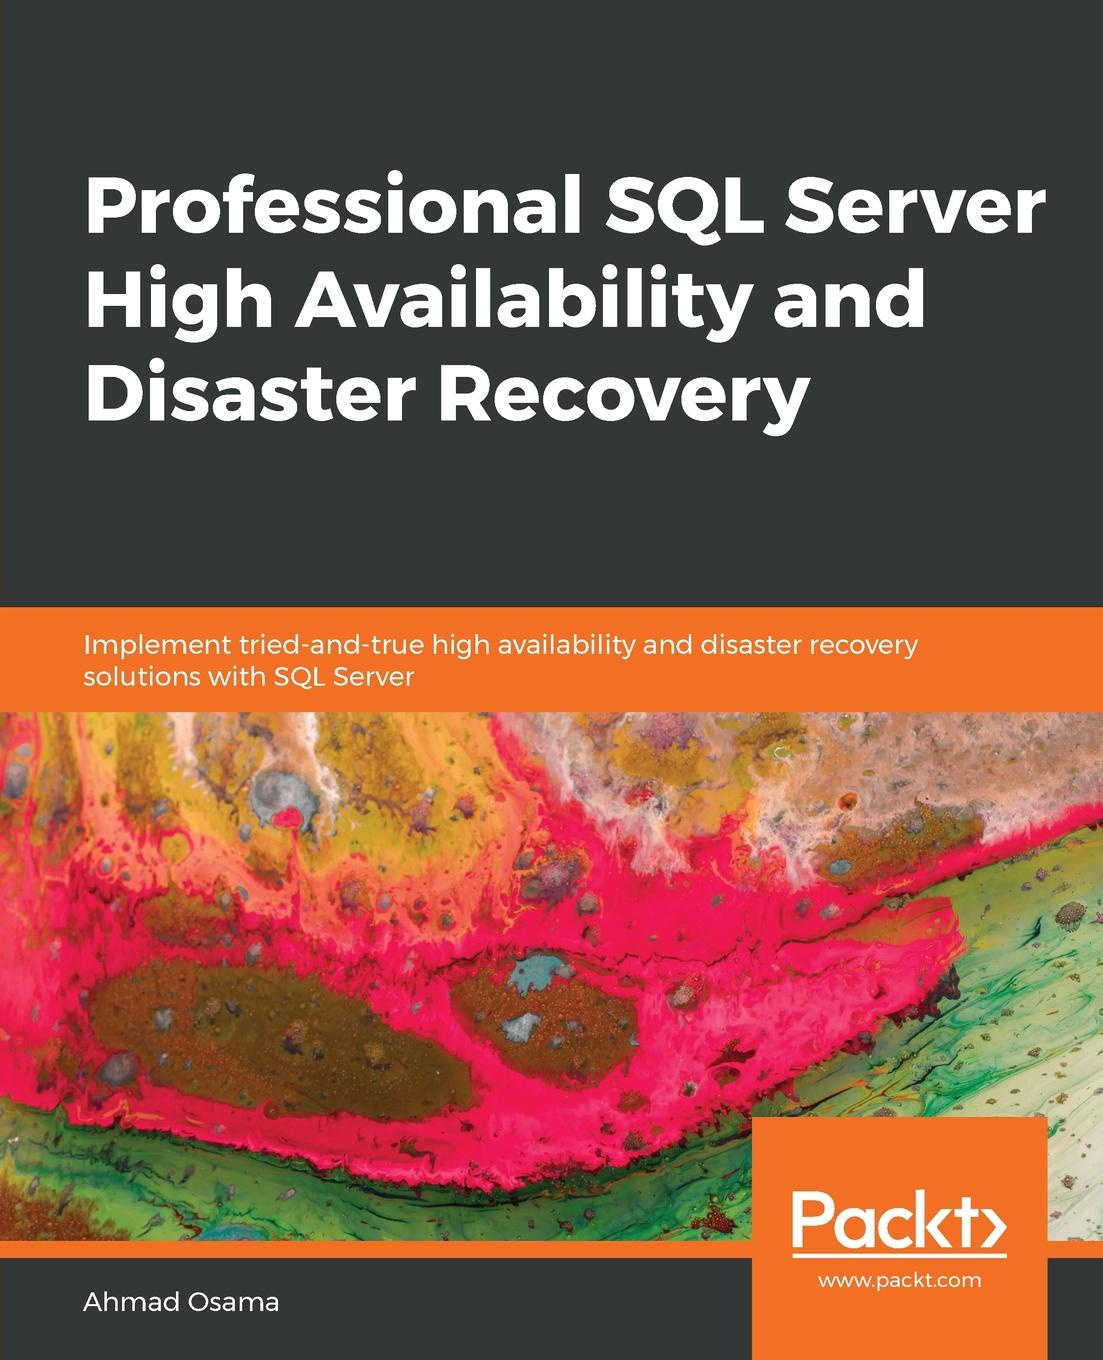 цена на Ahmad Osama Professional SQL Server High Availability and Disaster Recovery